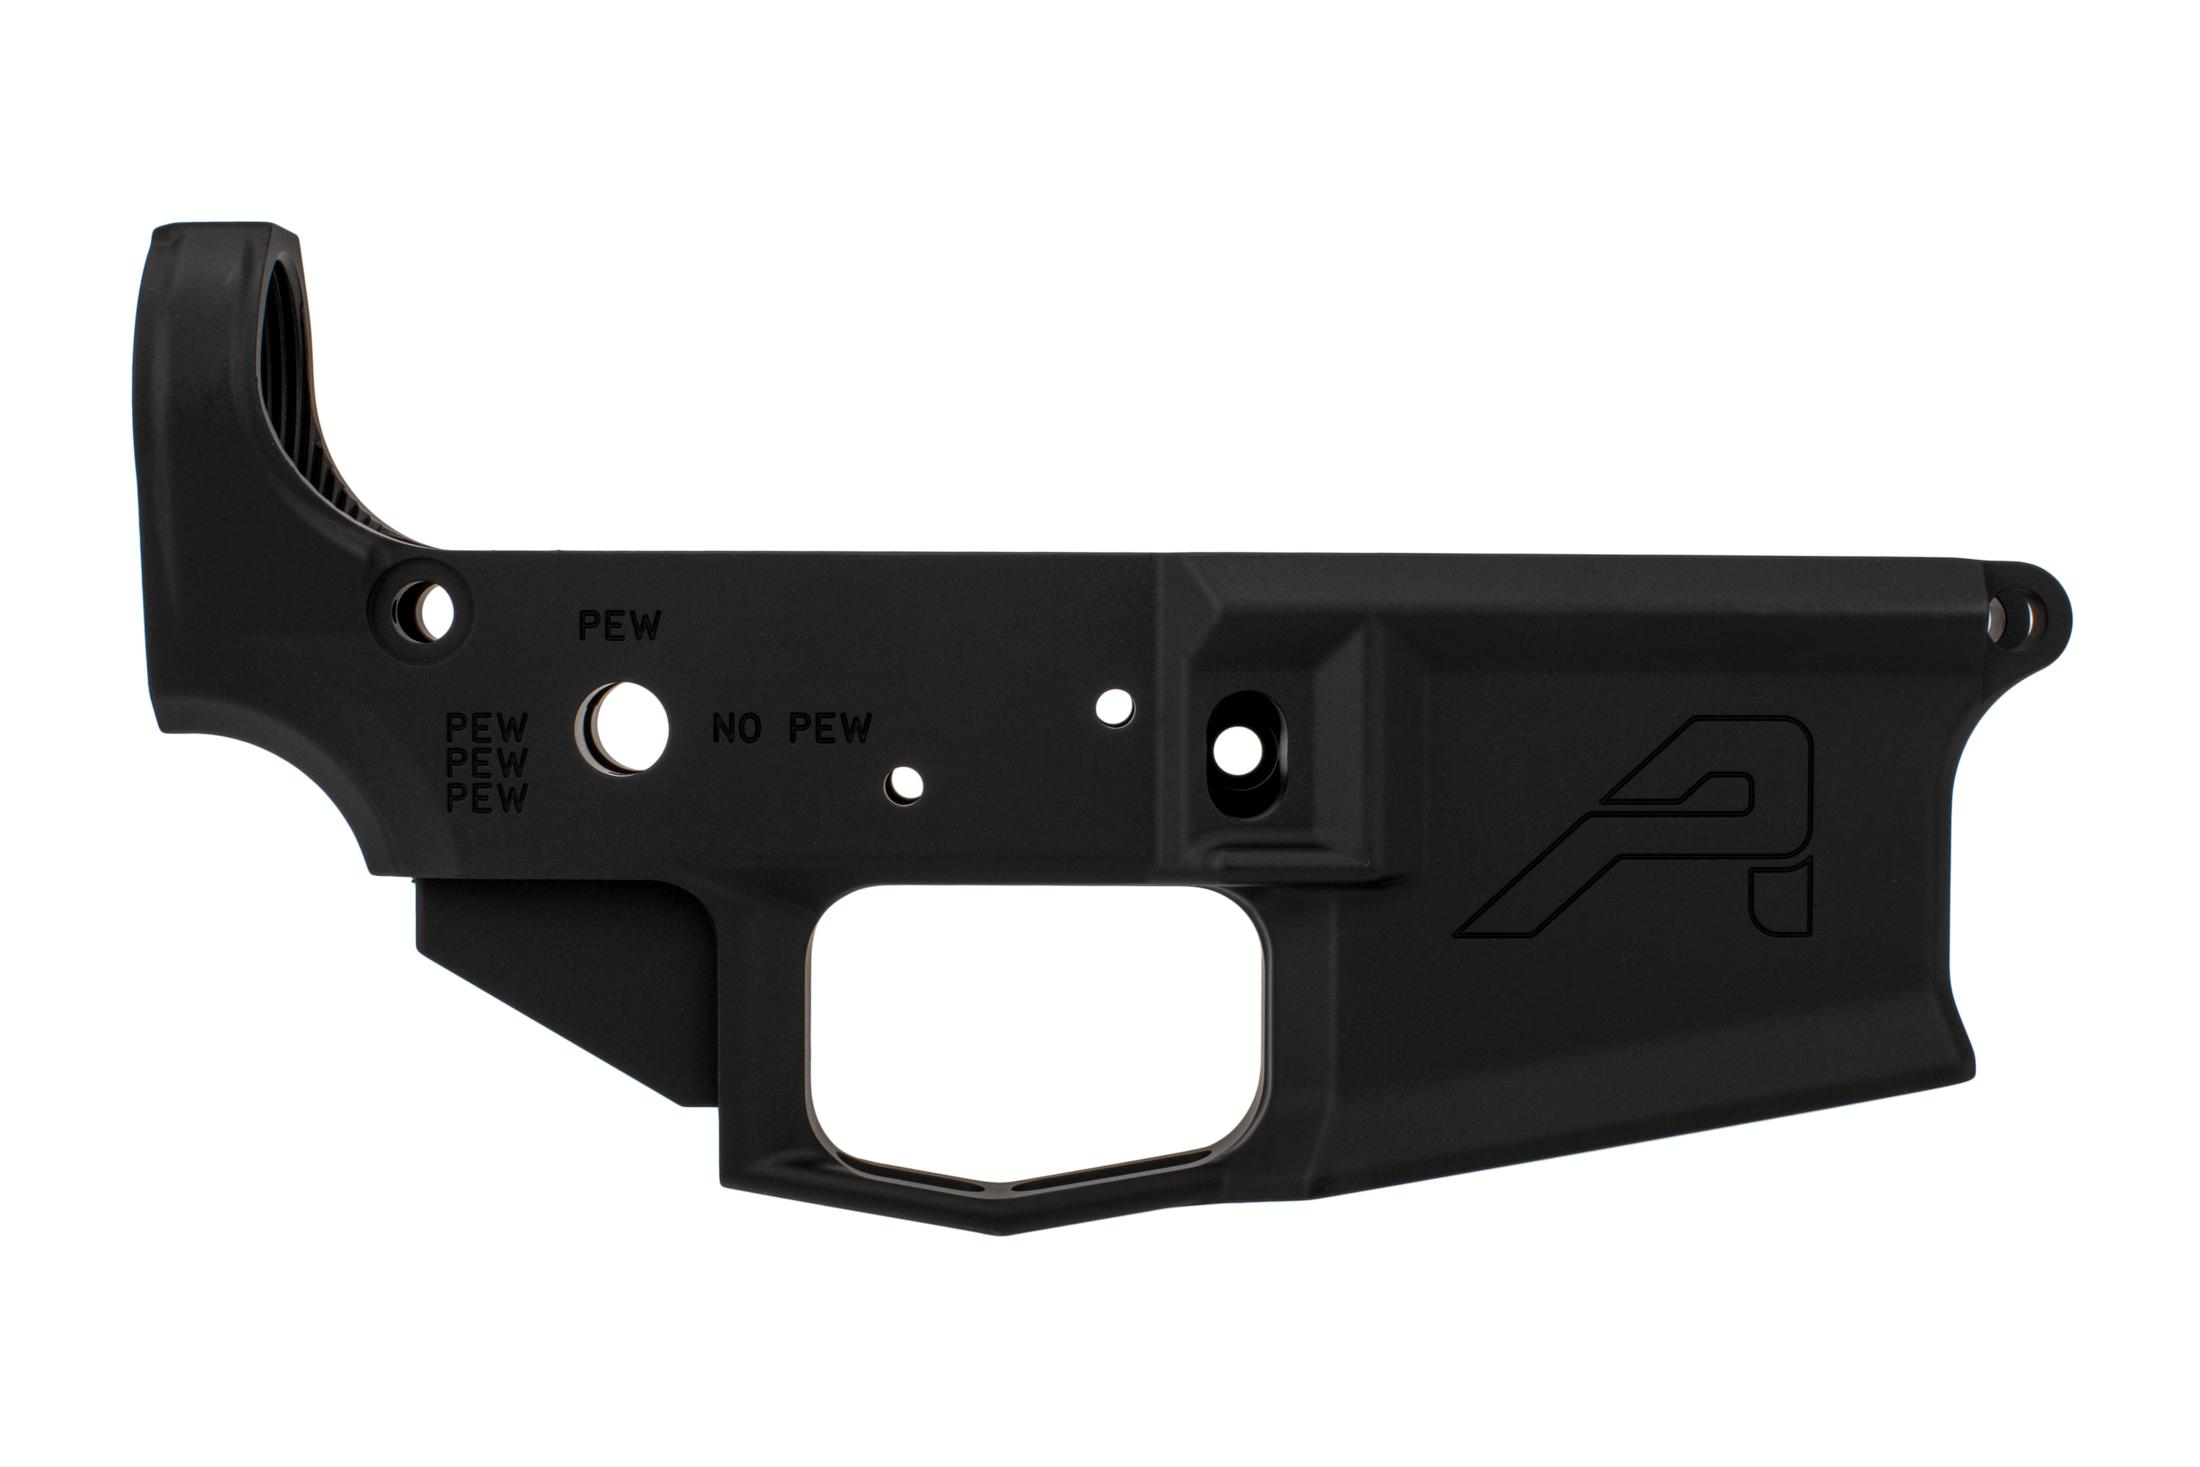 The Aero Precision PEW4E1 stripped lower receiver features a black hardcoat anodized finish